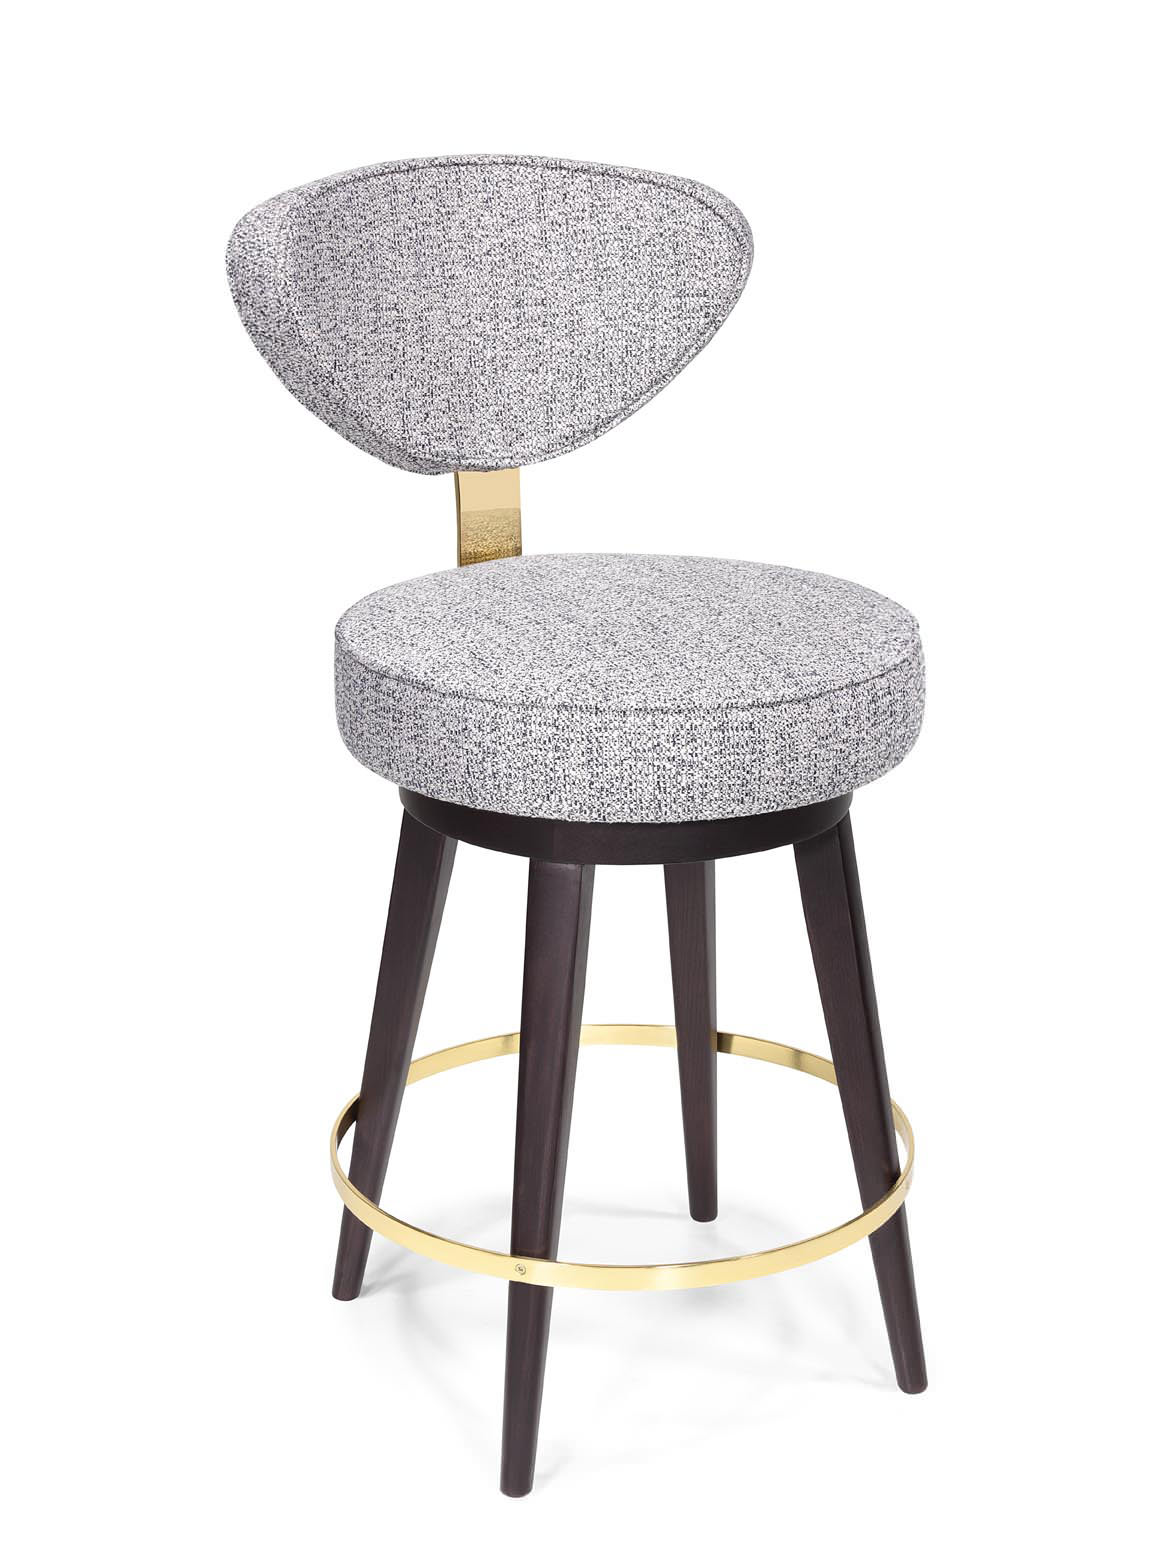 Counter stool with brass detailing